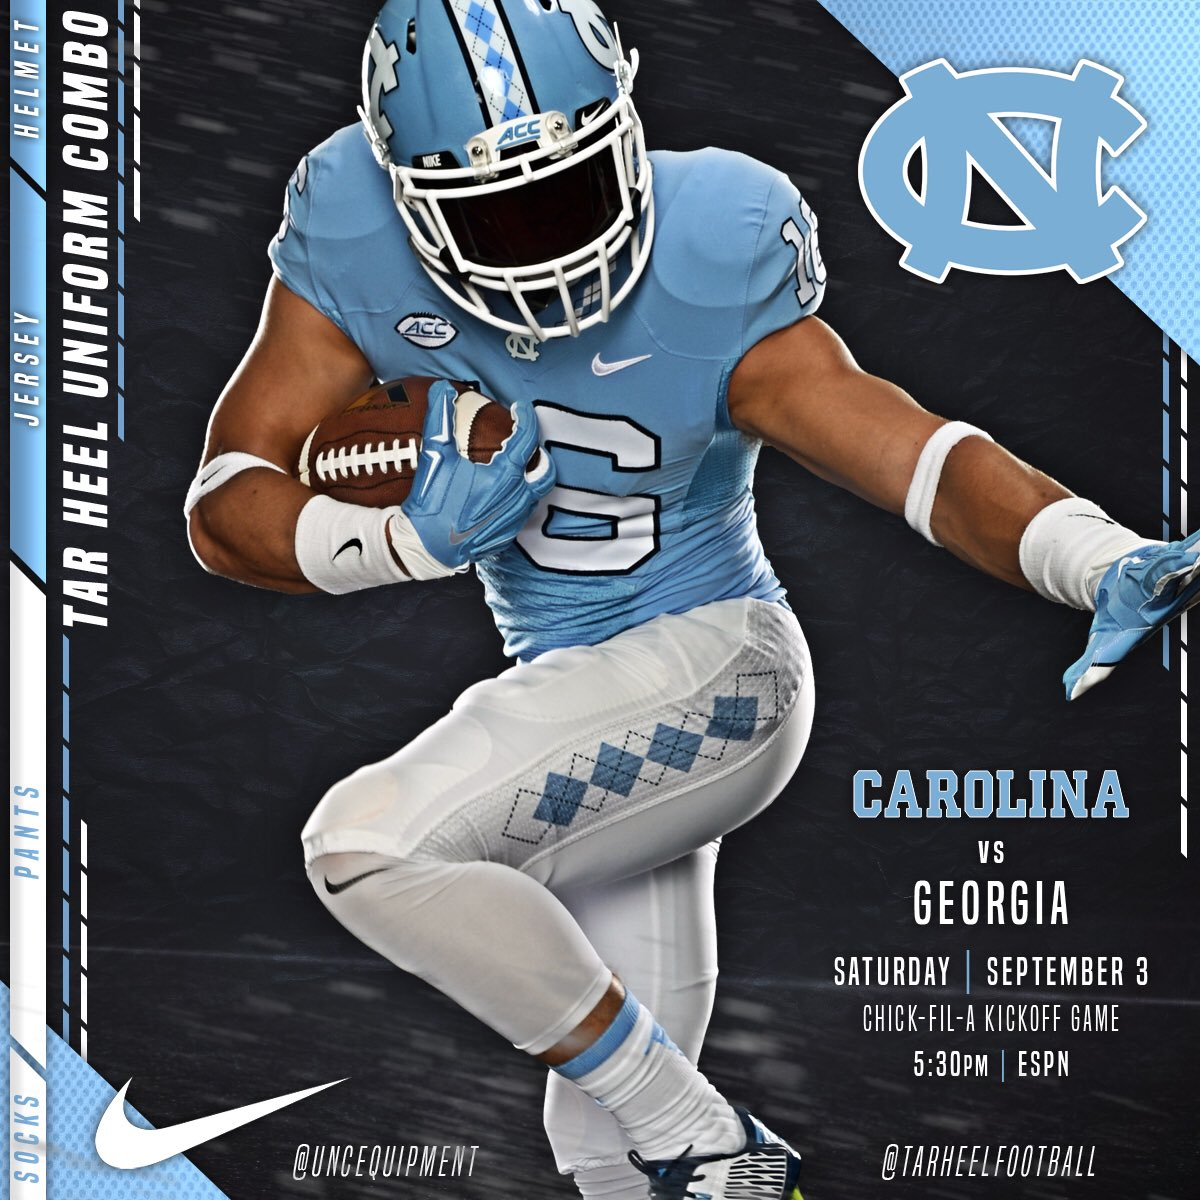 b6ee5c8bf Carolina Football on Twitter